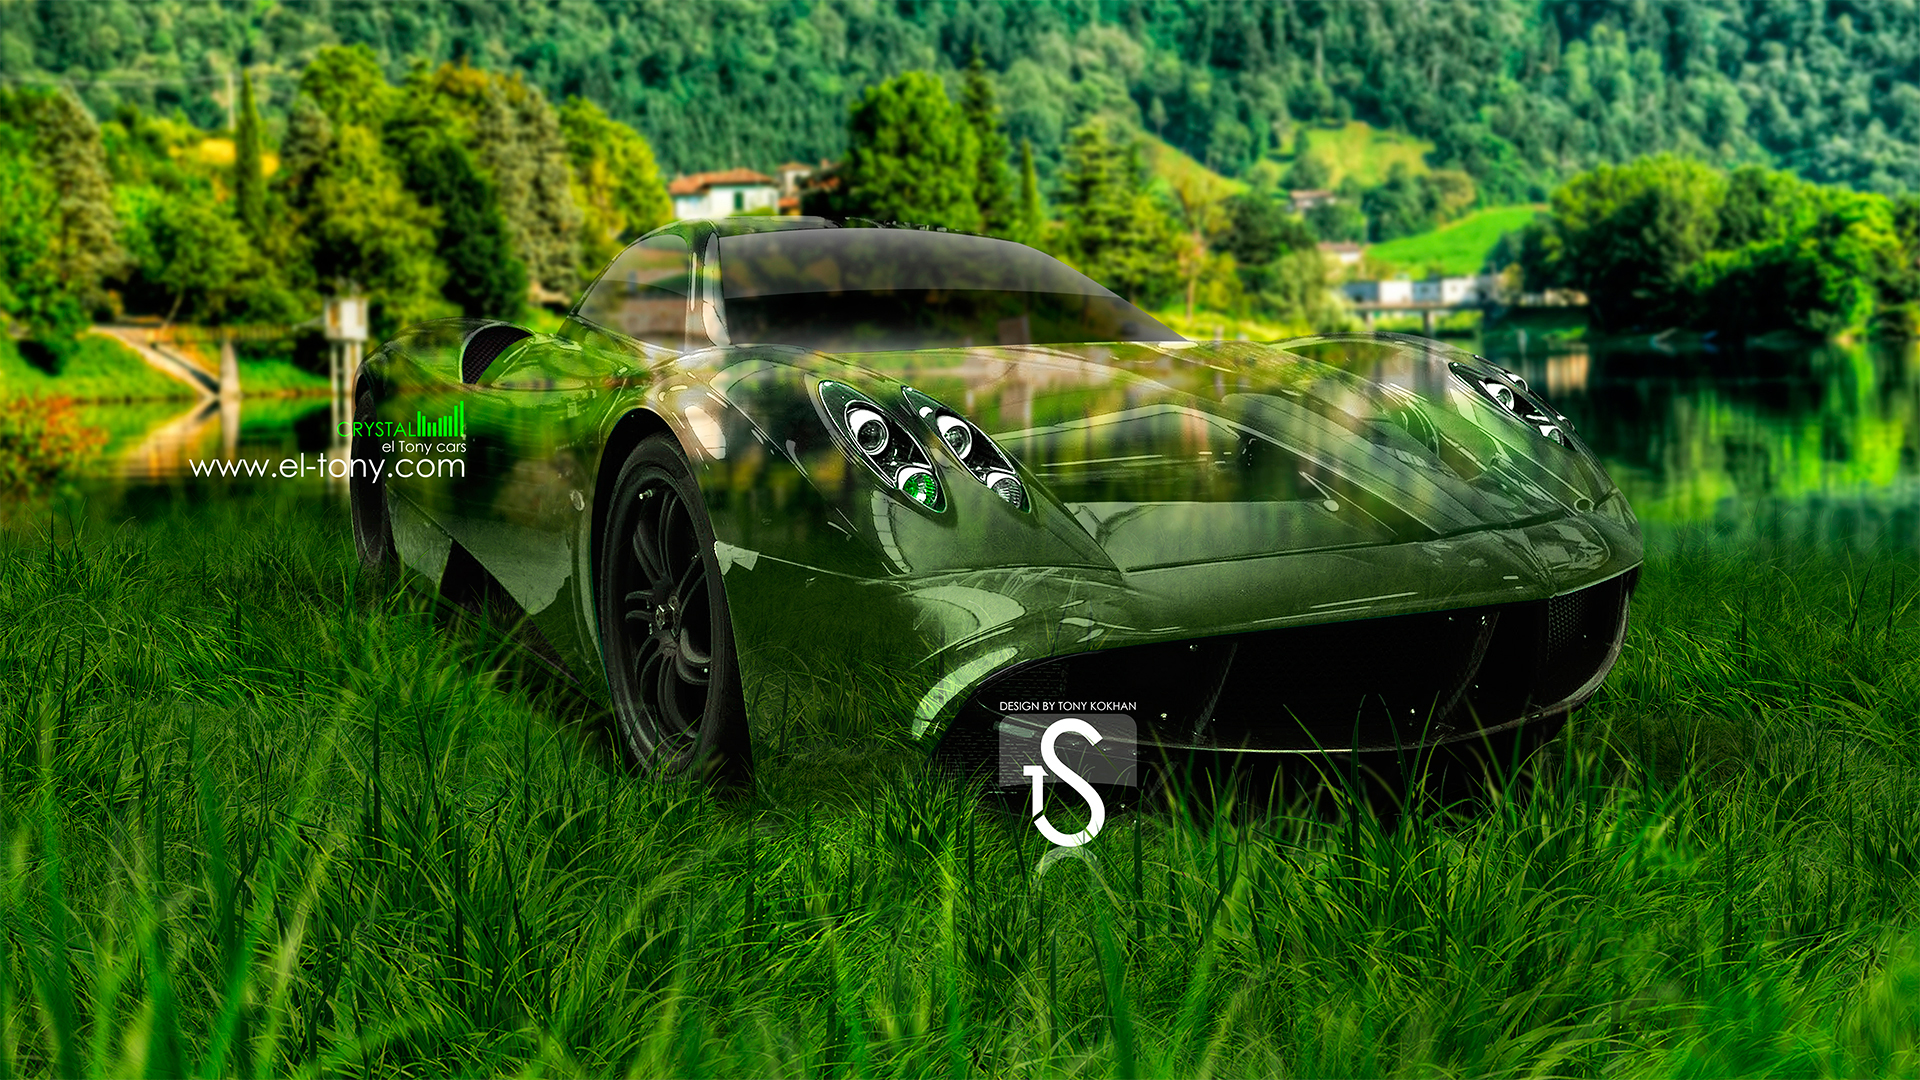 Merveilleux Pagani Huayra Crystal Car 2013 Nature Green Grass HD Wallpapers  Design By Tony Kokhan 1920